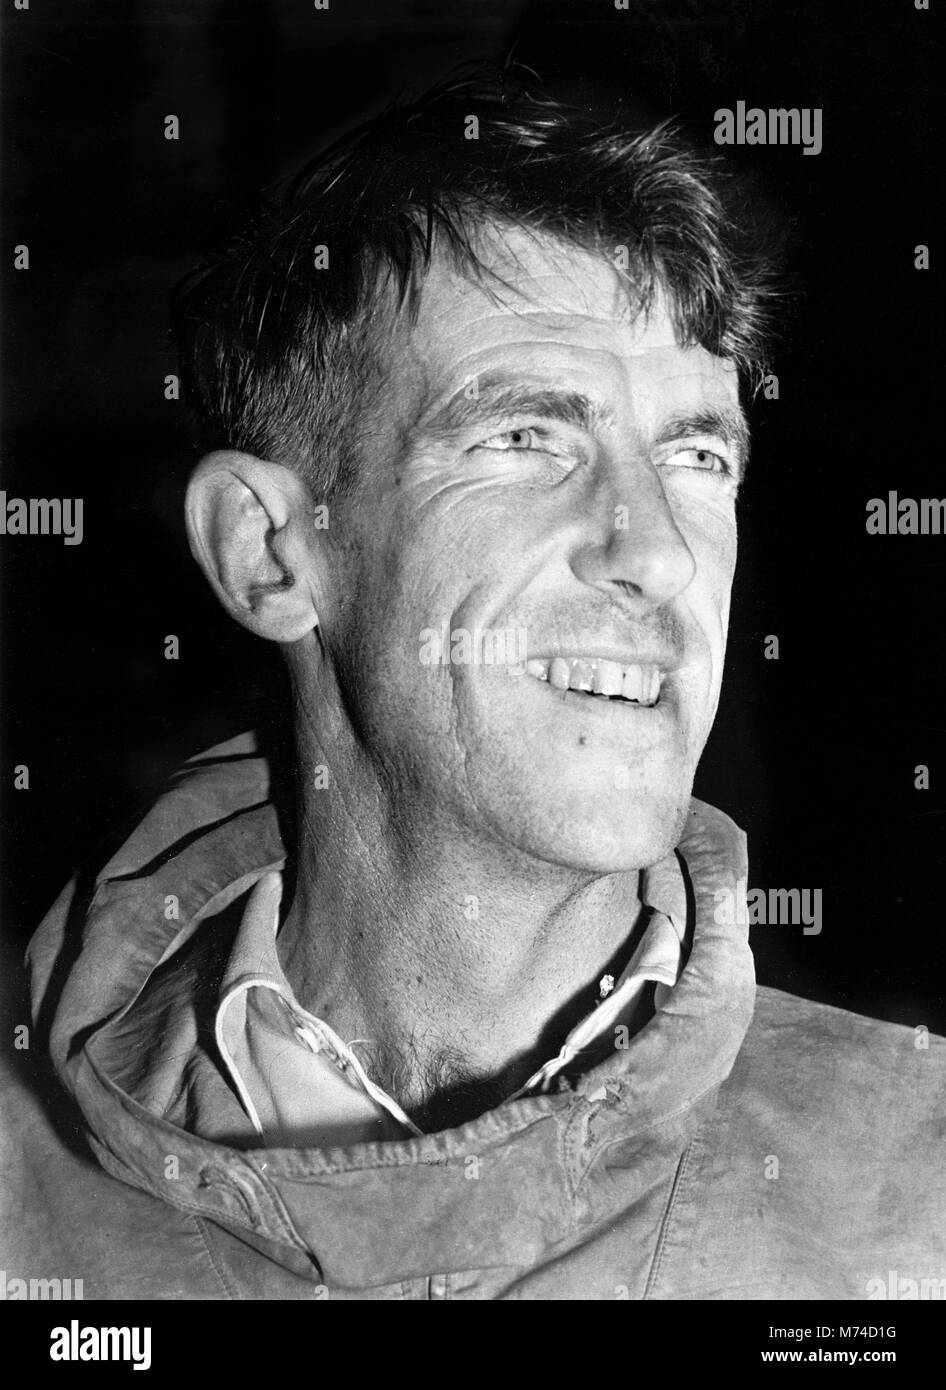 Sir Edmund Hillary (1919-2008), portrait of the New Zealand mountaineer, c.1953. - Stock Image